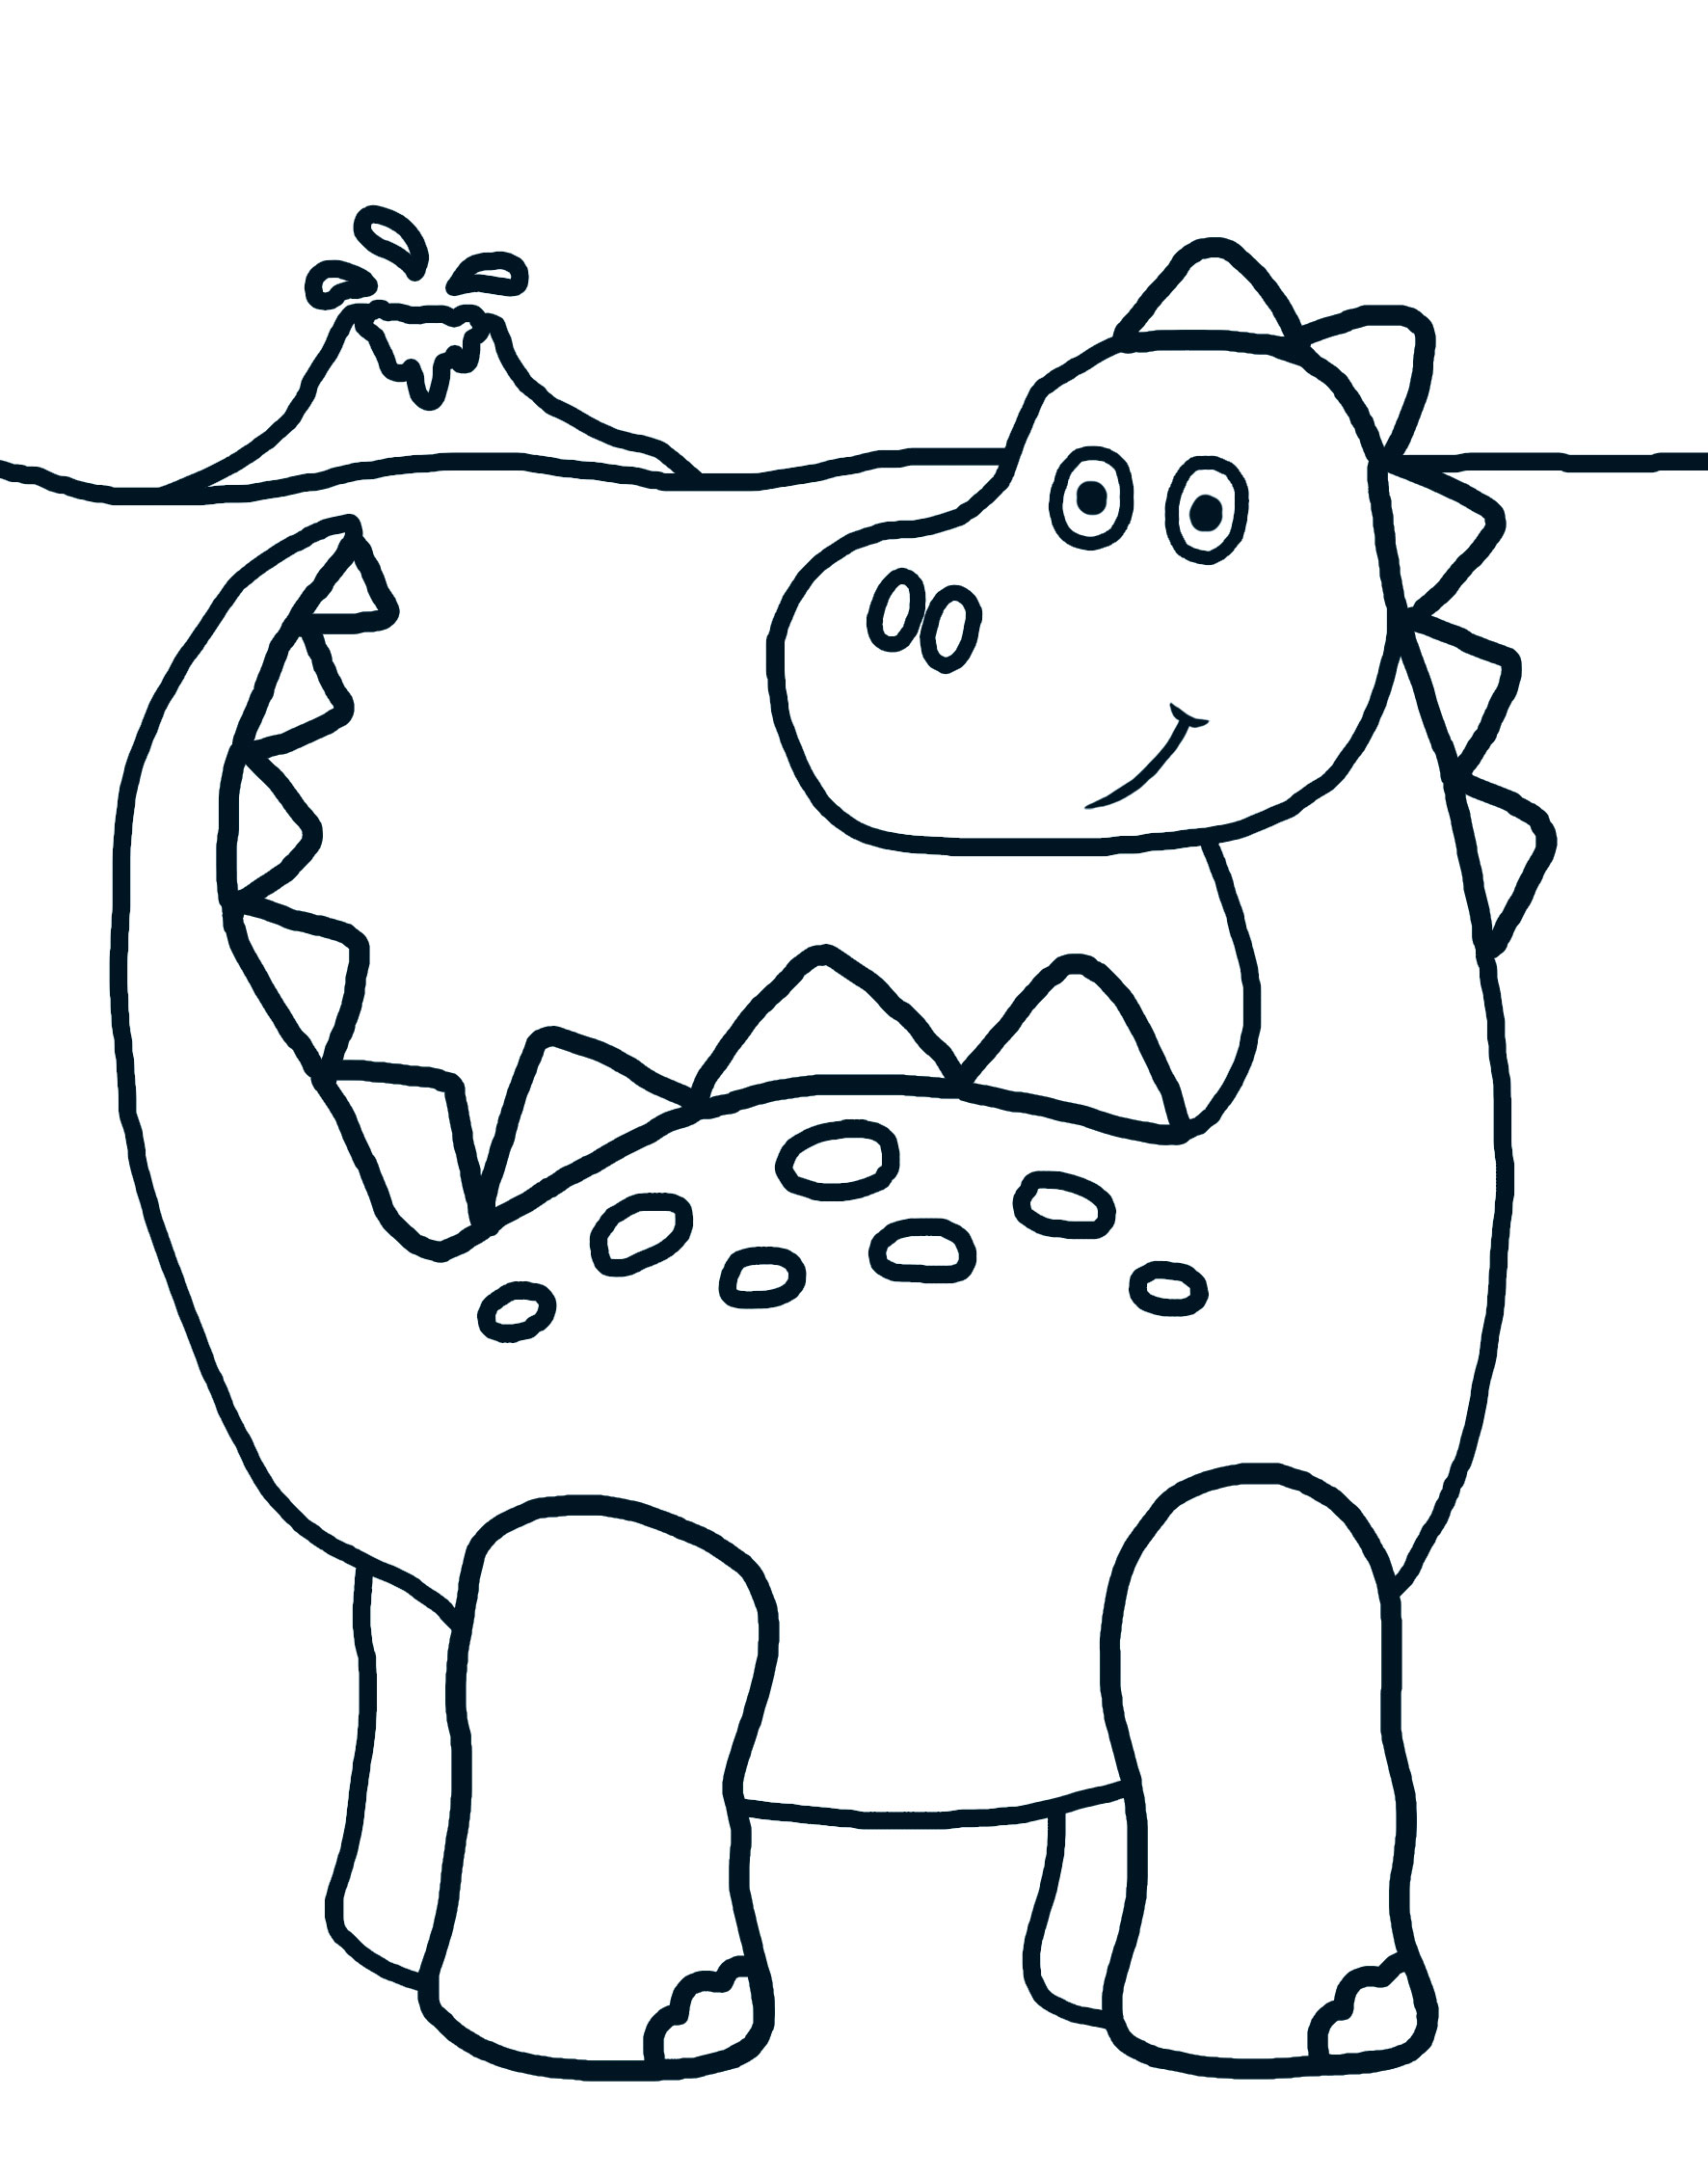 Download And Print Adventure Colouring Priddy Books Coloring Pages Images